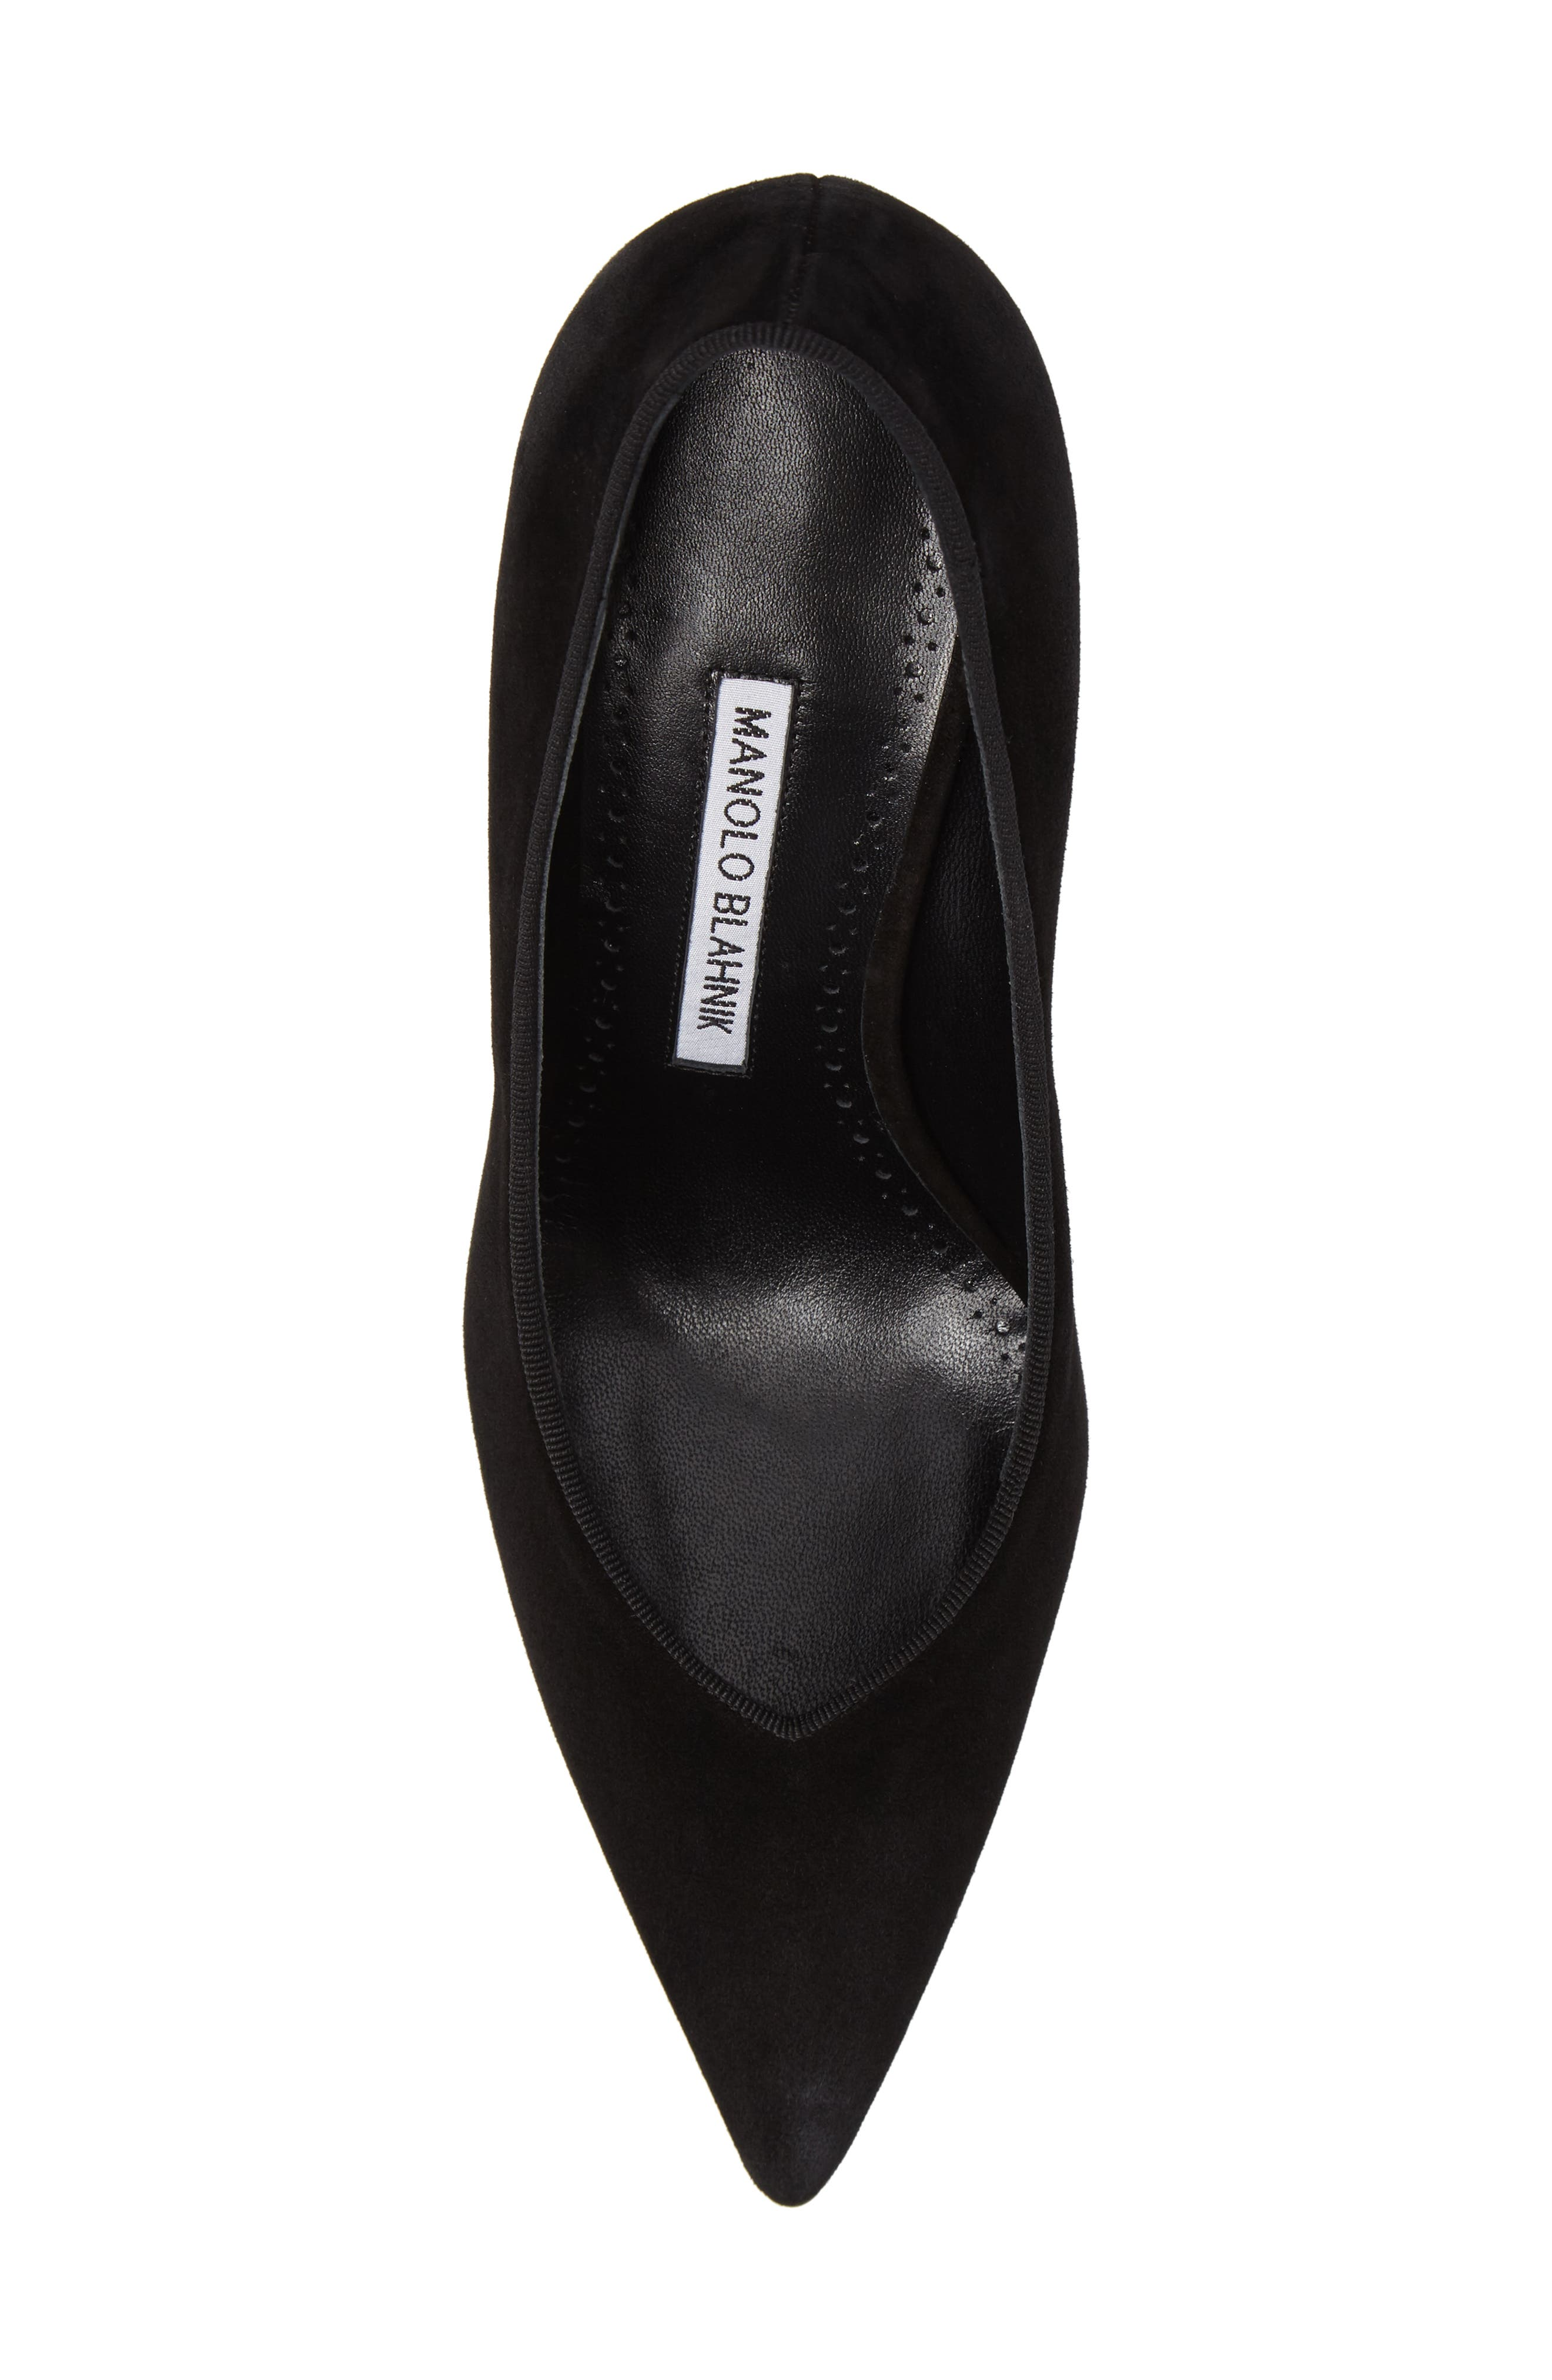 Urgenze Pointy Toe Pump,                             Alternate thumbnail 5, color,                             Black Suede